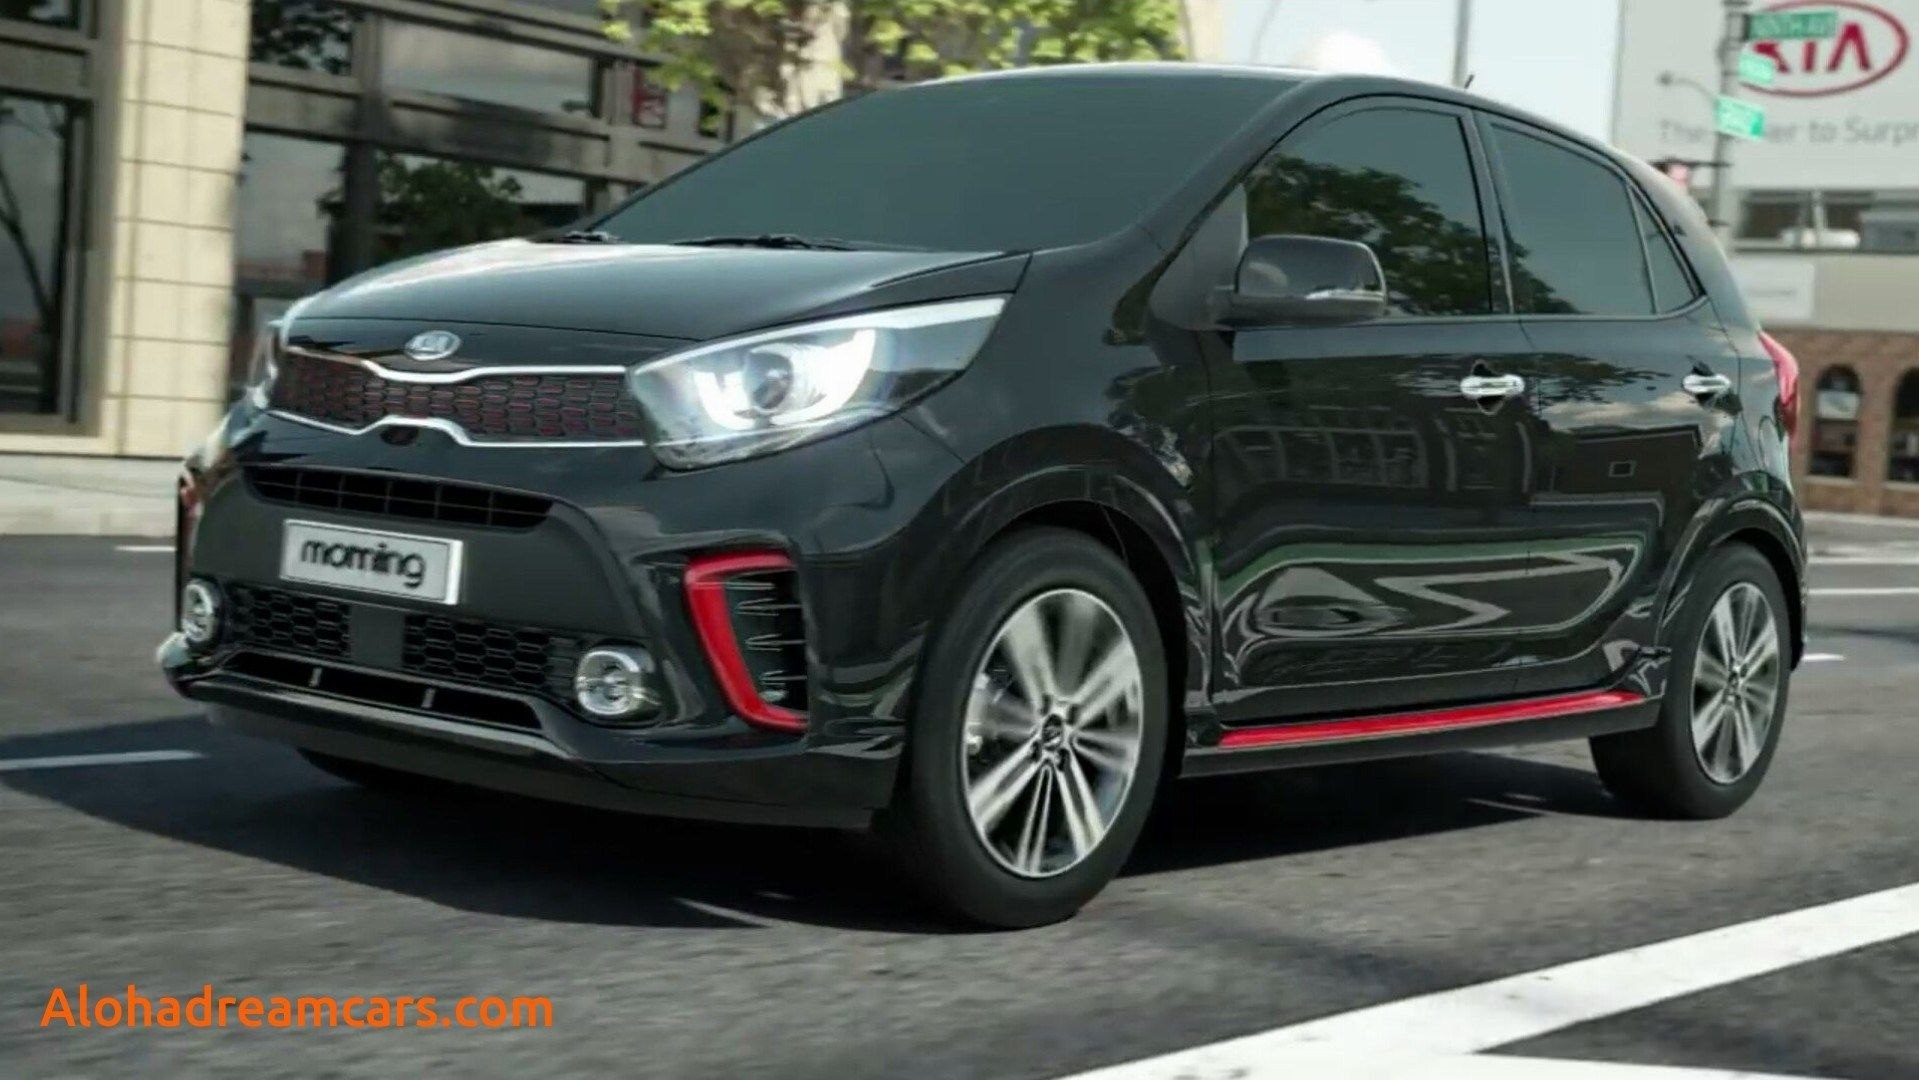 54 New 2020 Kia Picanto Egypt Concept and Review